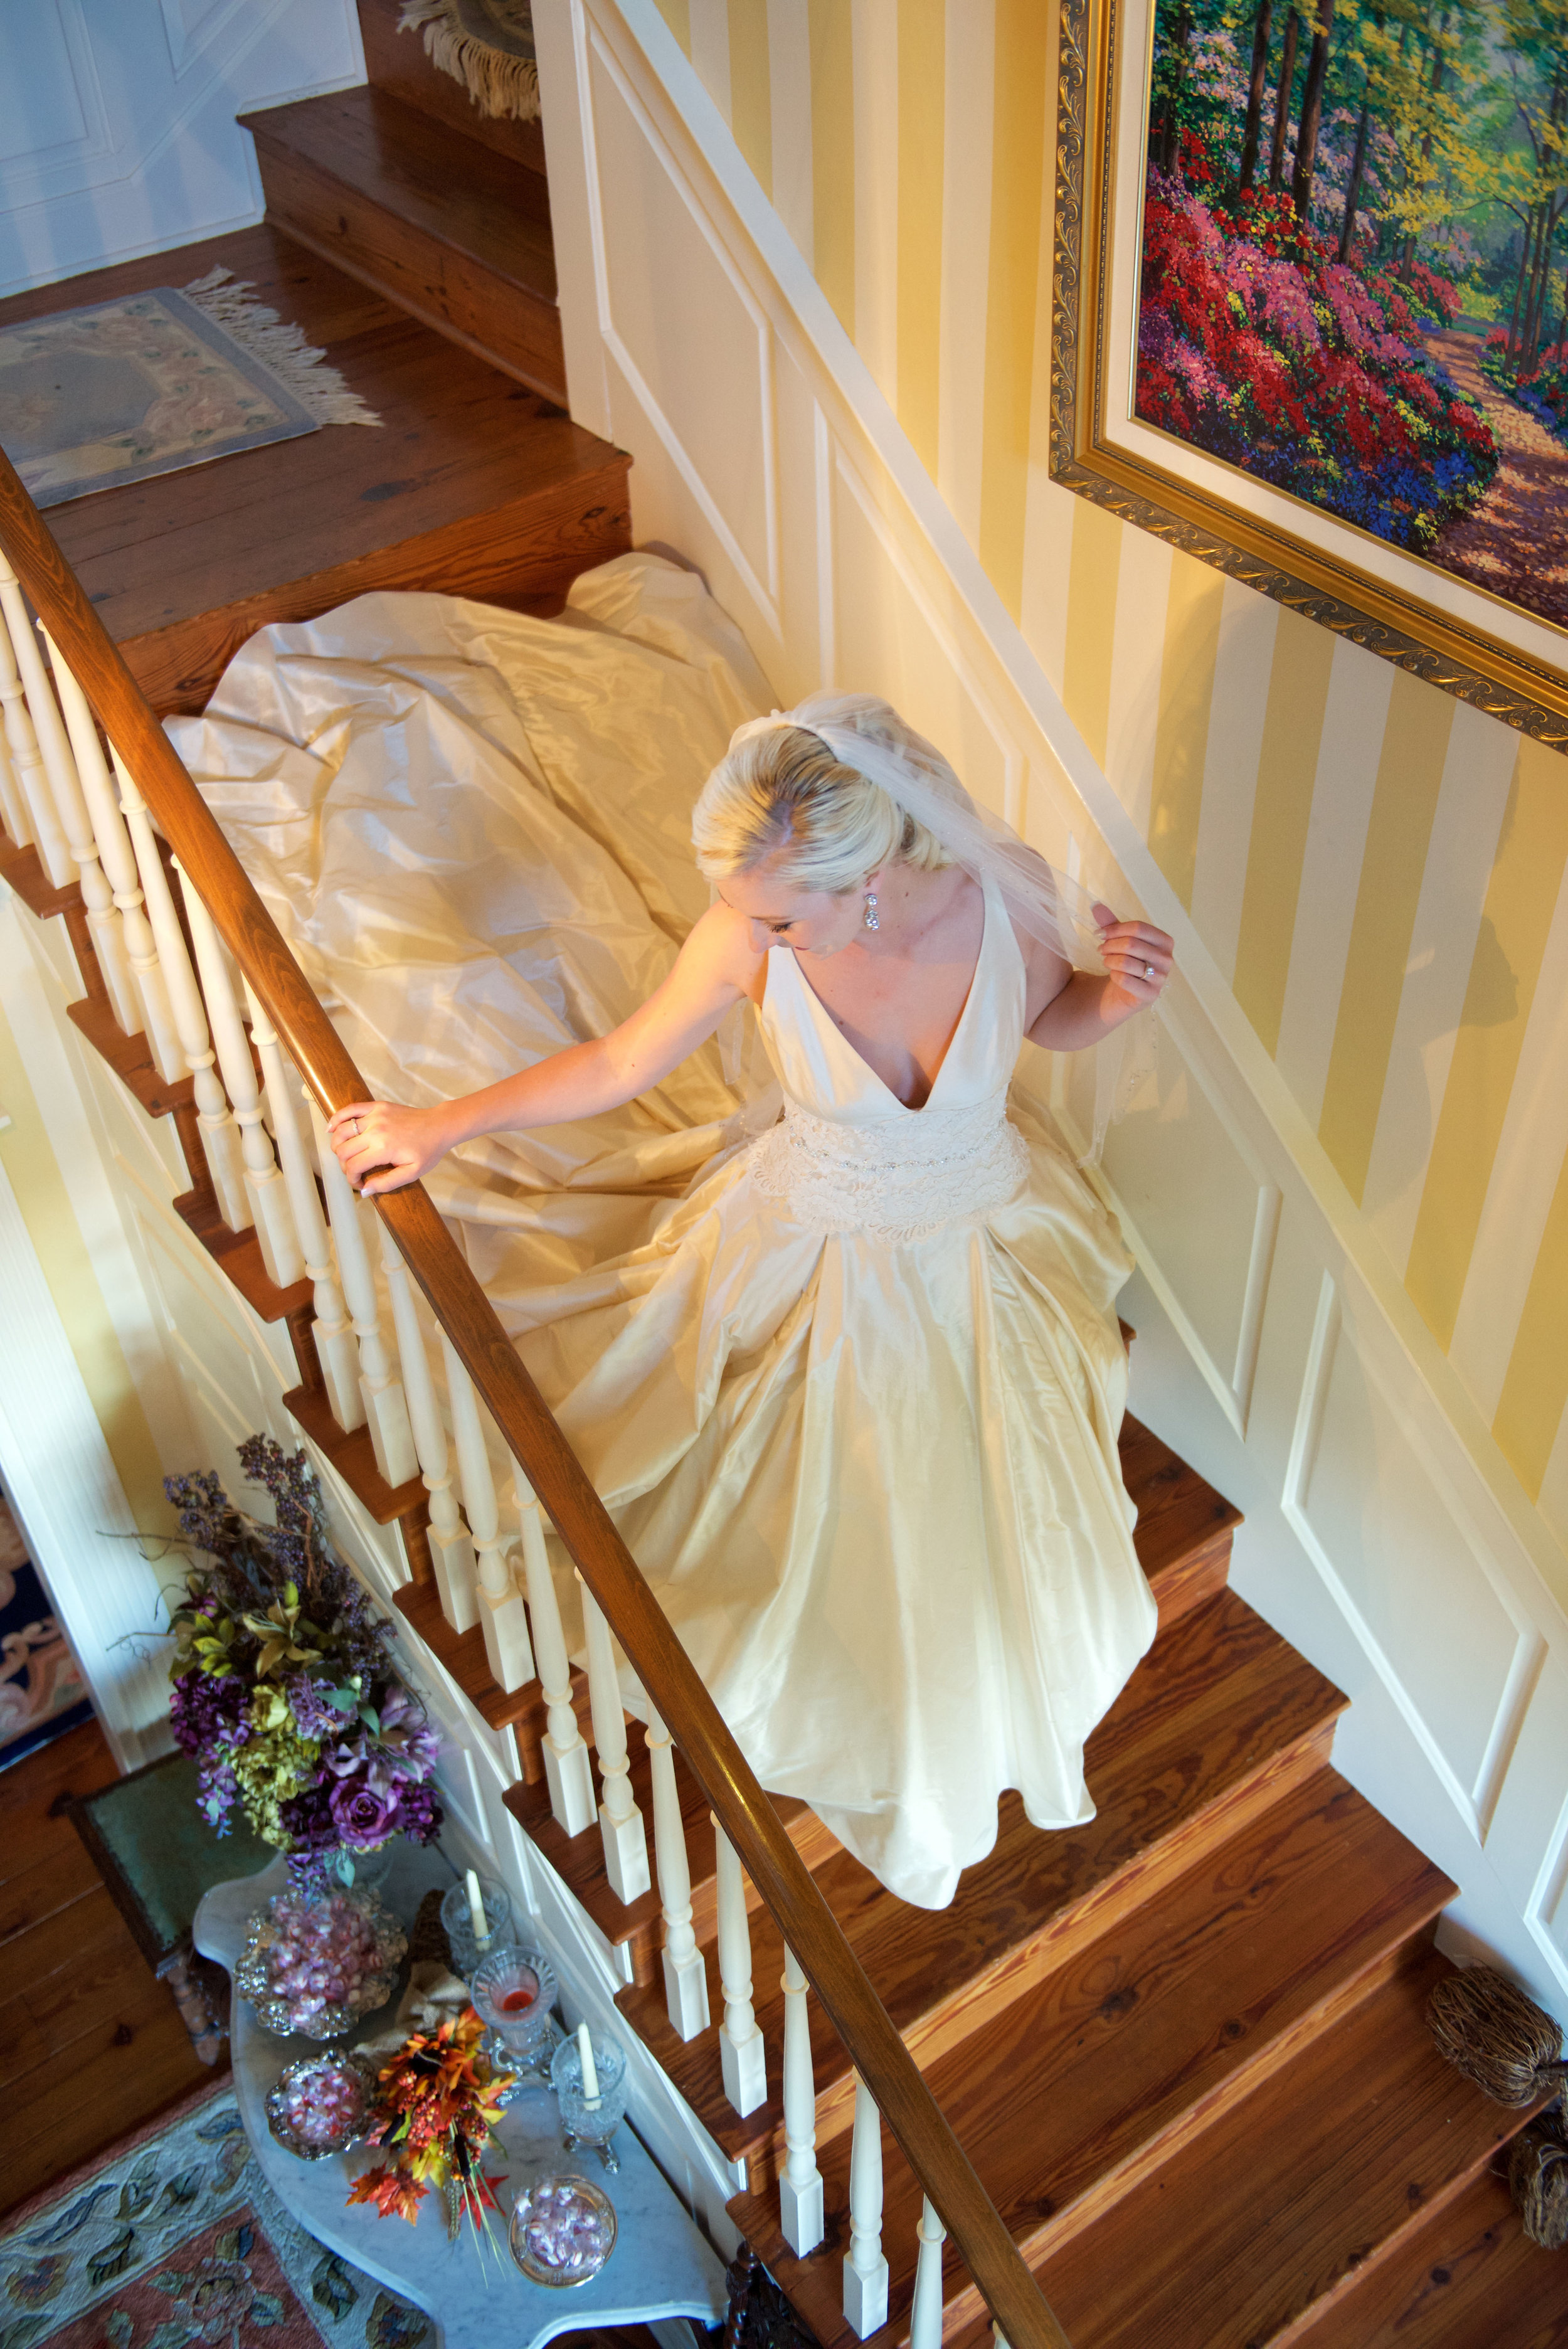 Bride cascades down a staircase in her wedding gown